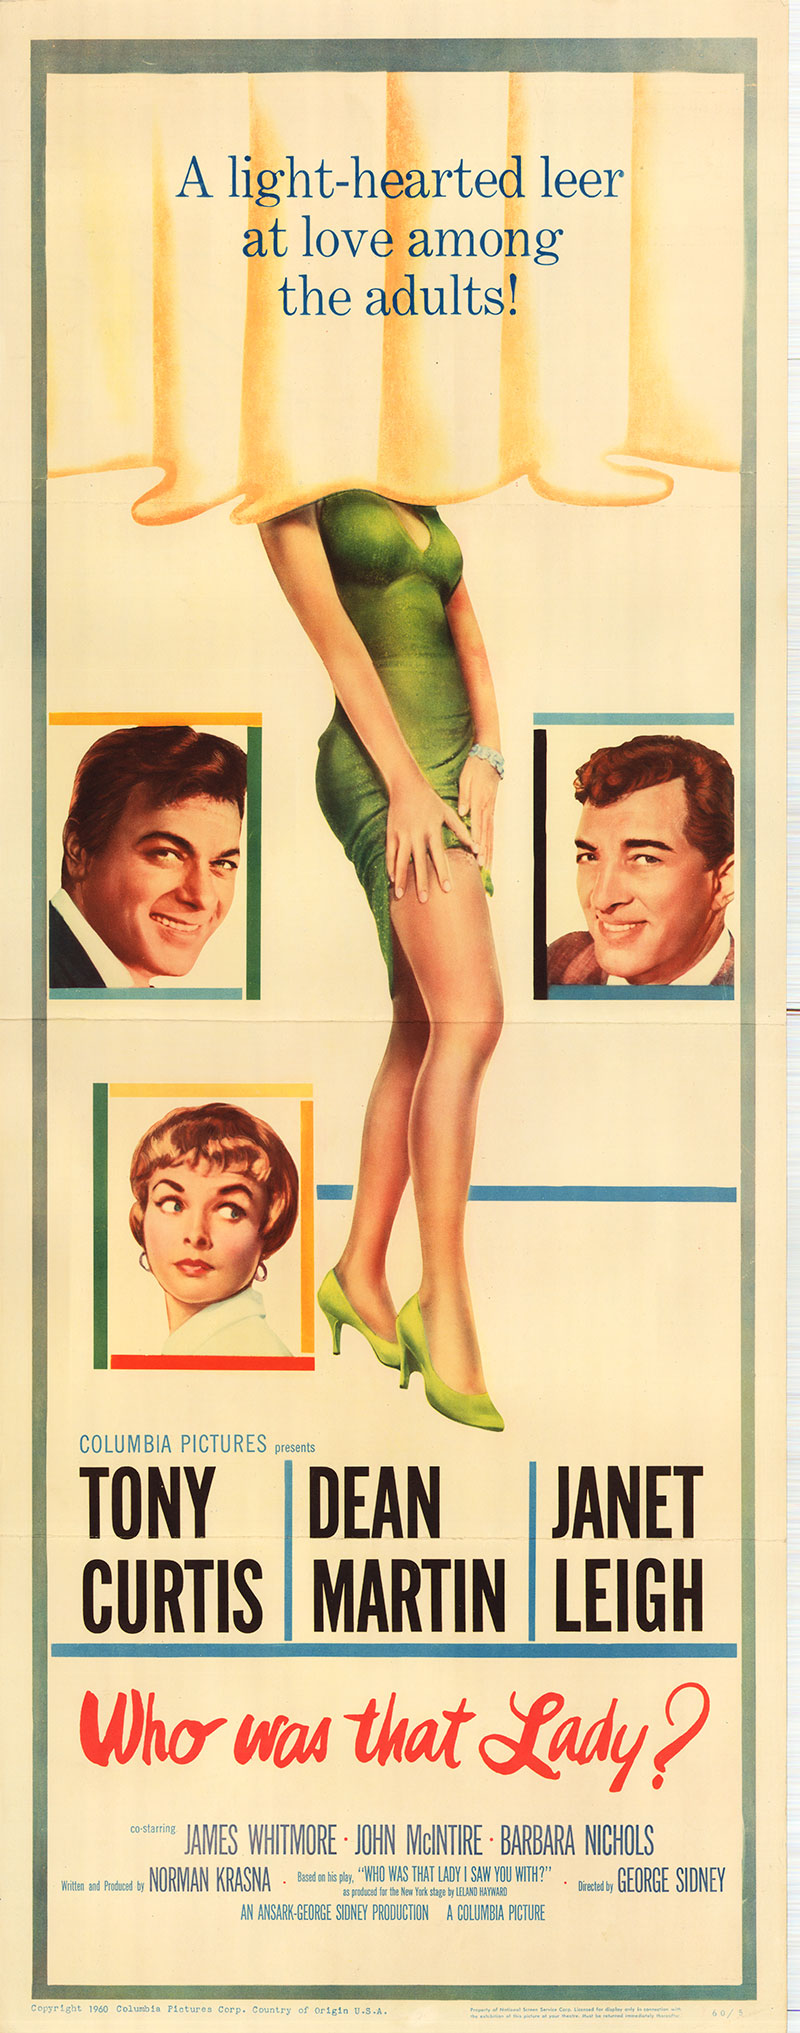 Pictured is a US insert poster for the 1960 George Sidney film Who Was that Lady starring Dean Martin as Michael Haney.